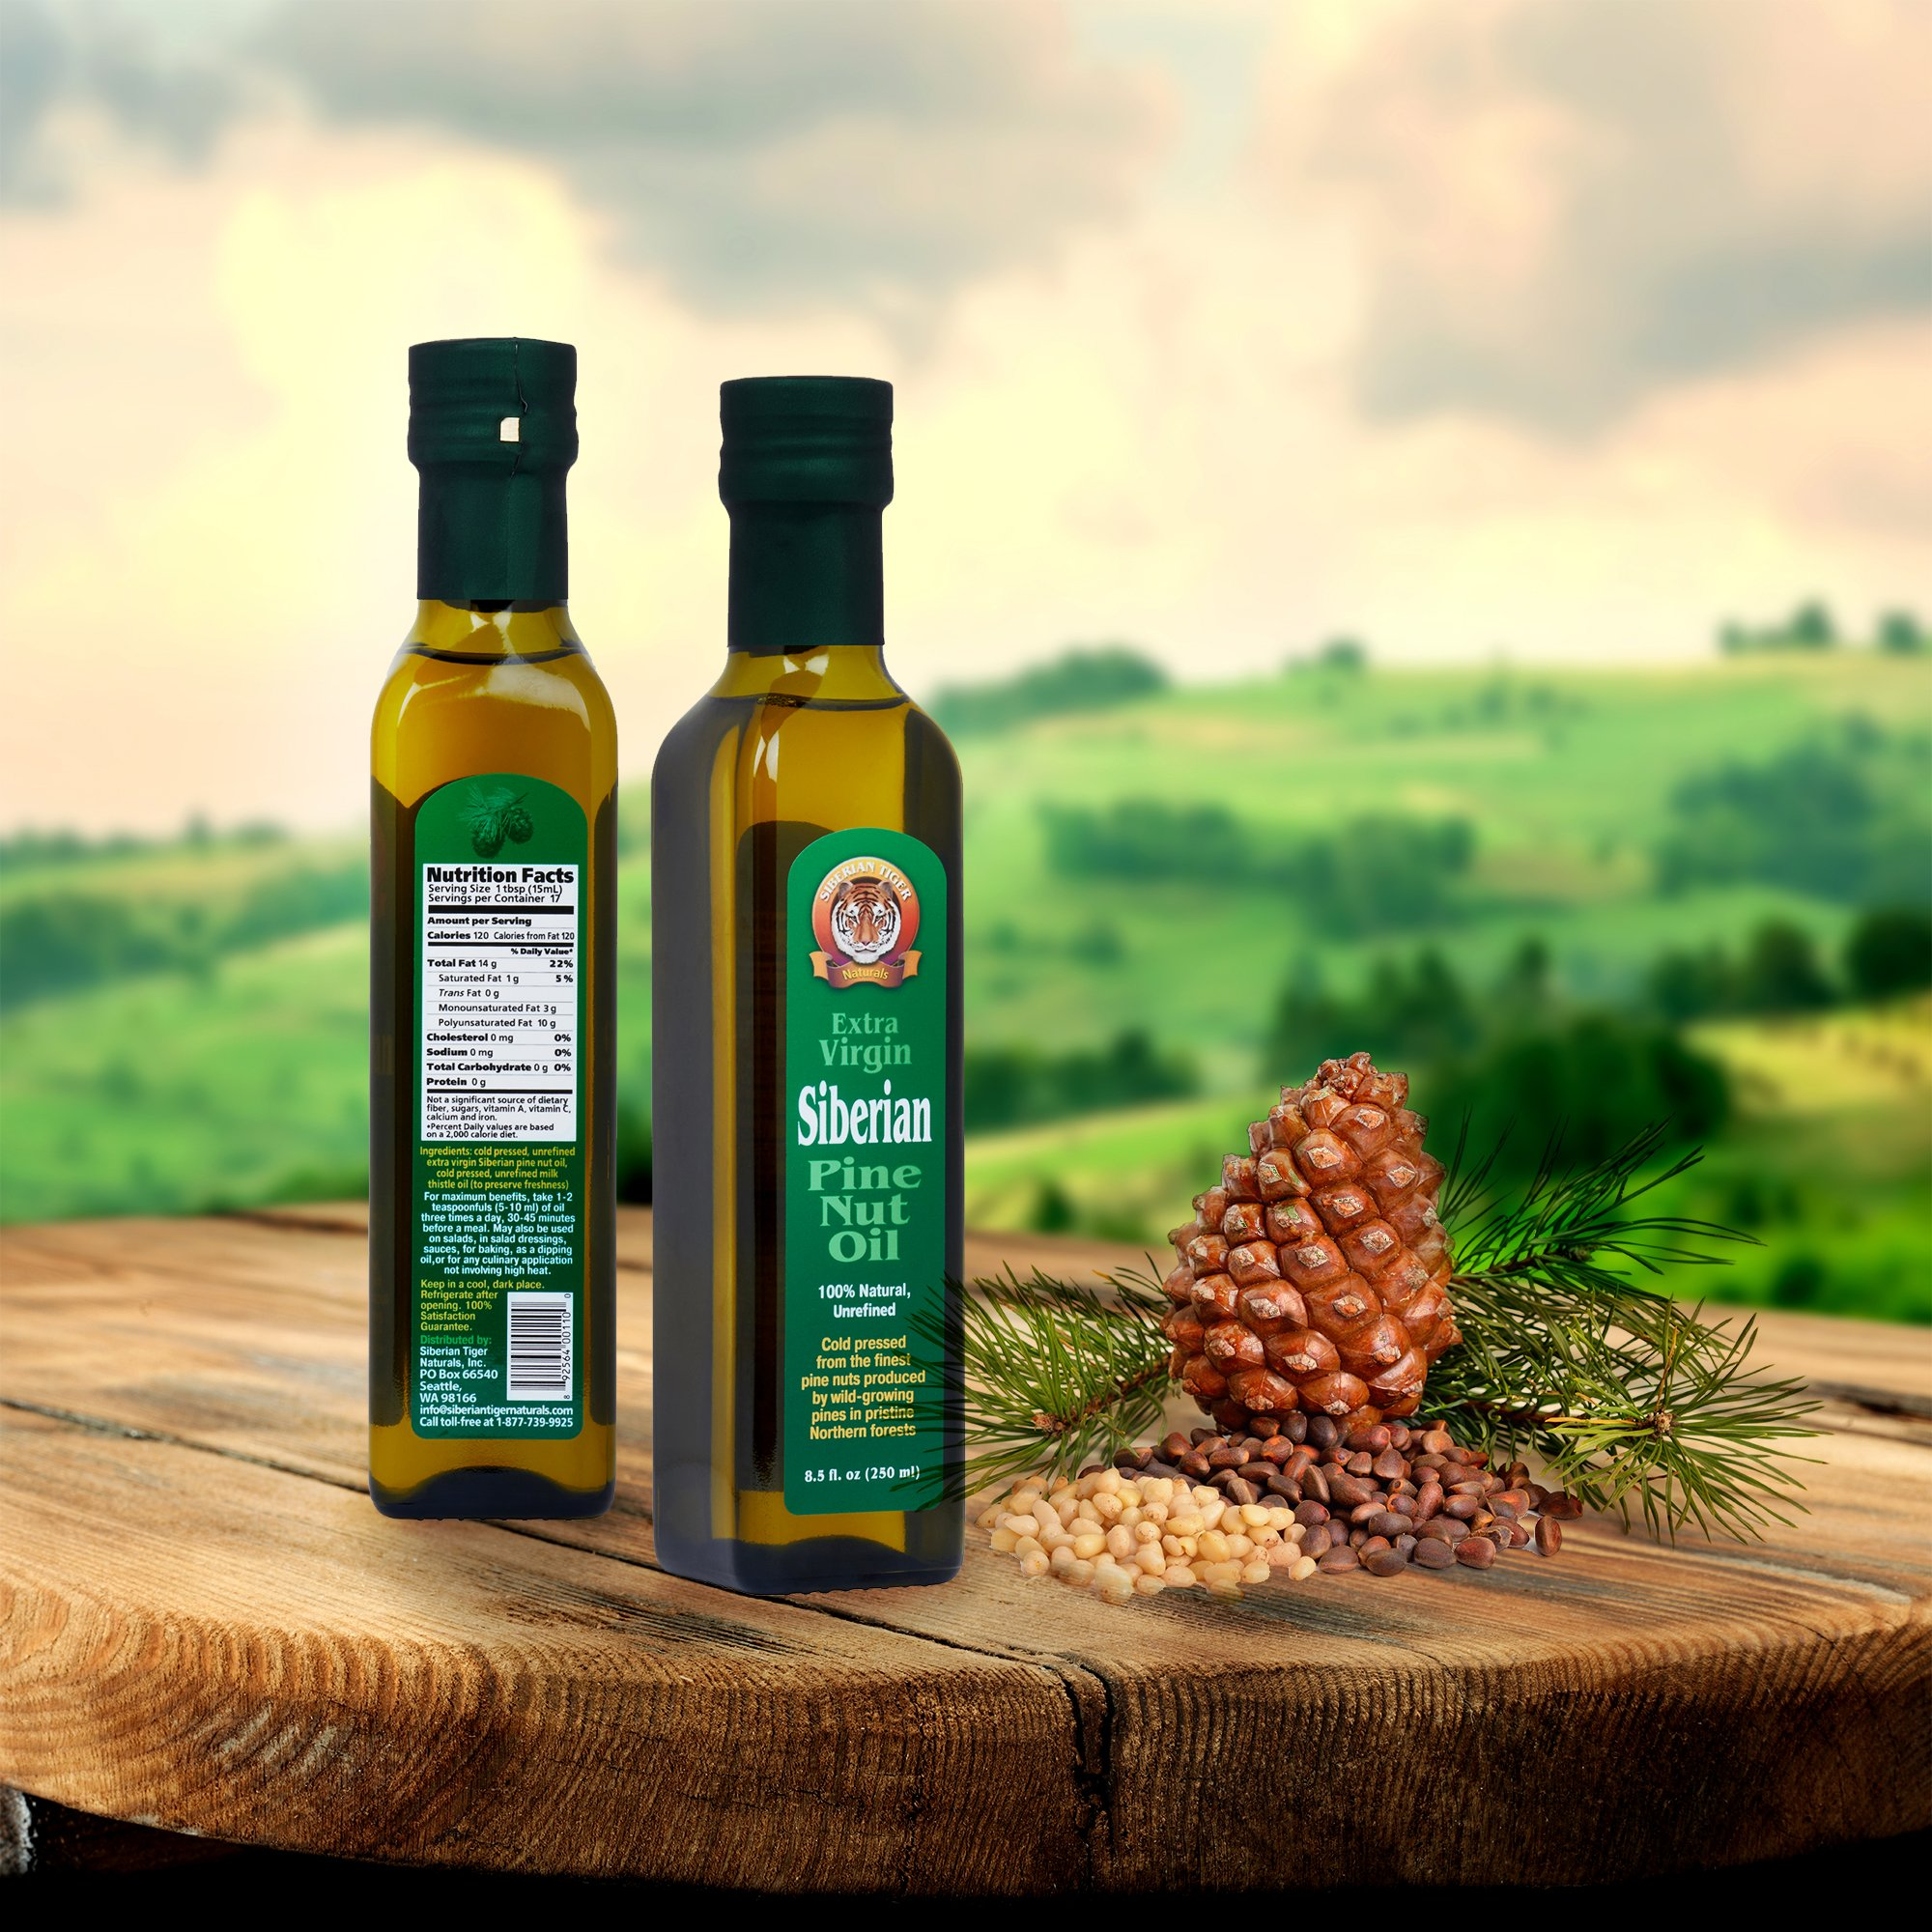 Extra Virgin Siberian Pine Nut Oil, 8.5 oz. Bottle - Premium Quality, Unrefined, 100% Natural - Benefits Overall Health & Aids Gastritis, Ulcers, Digestive Issues by Siberian Tiger Naturals (Image #3)